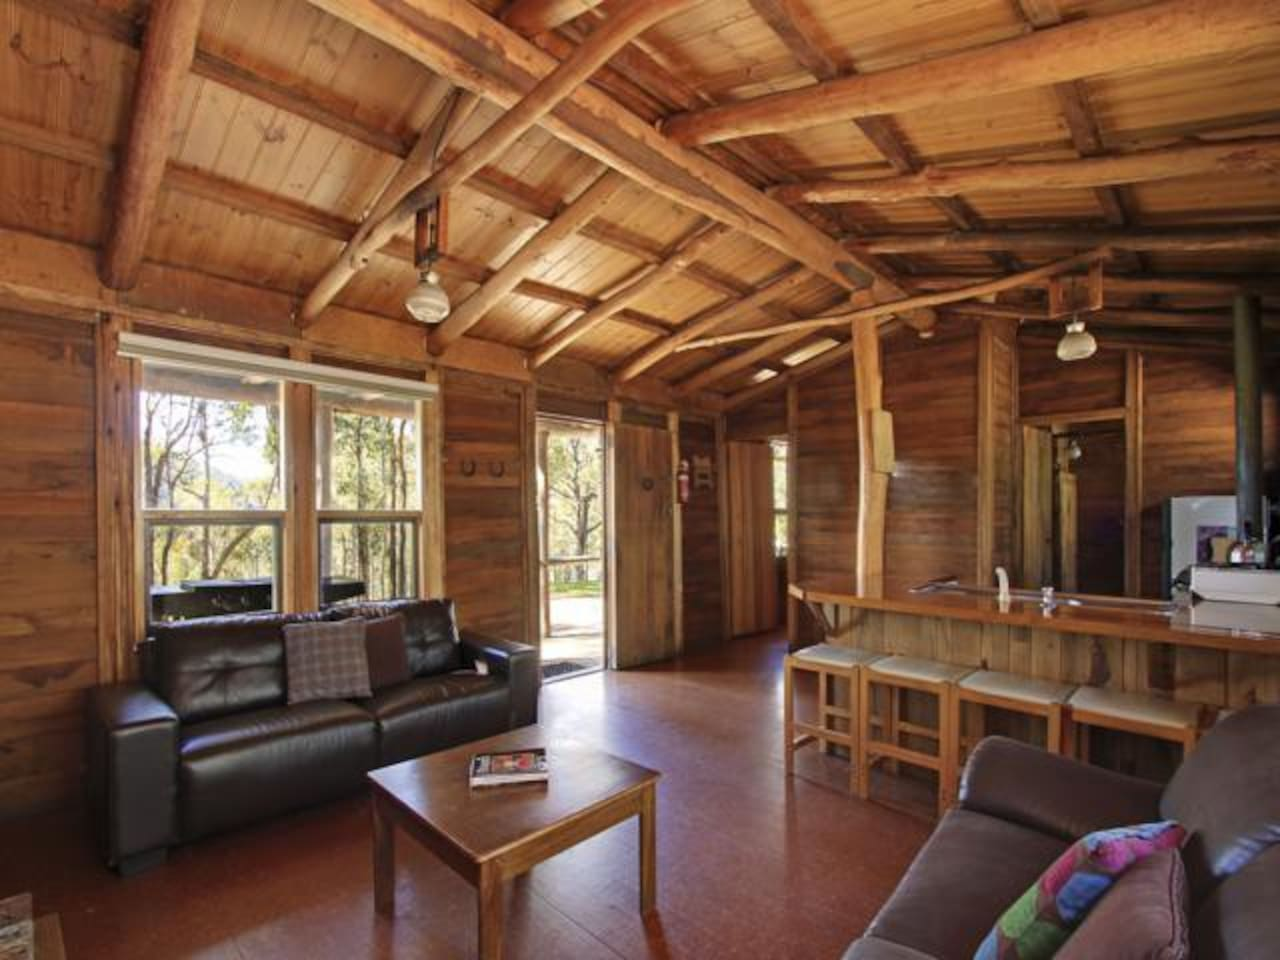 Timber Interior comfy lounges